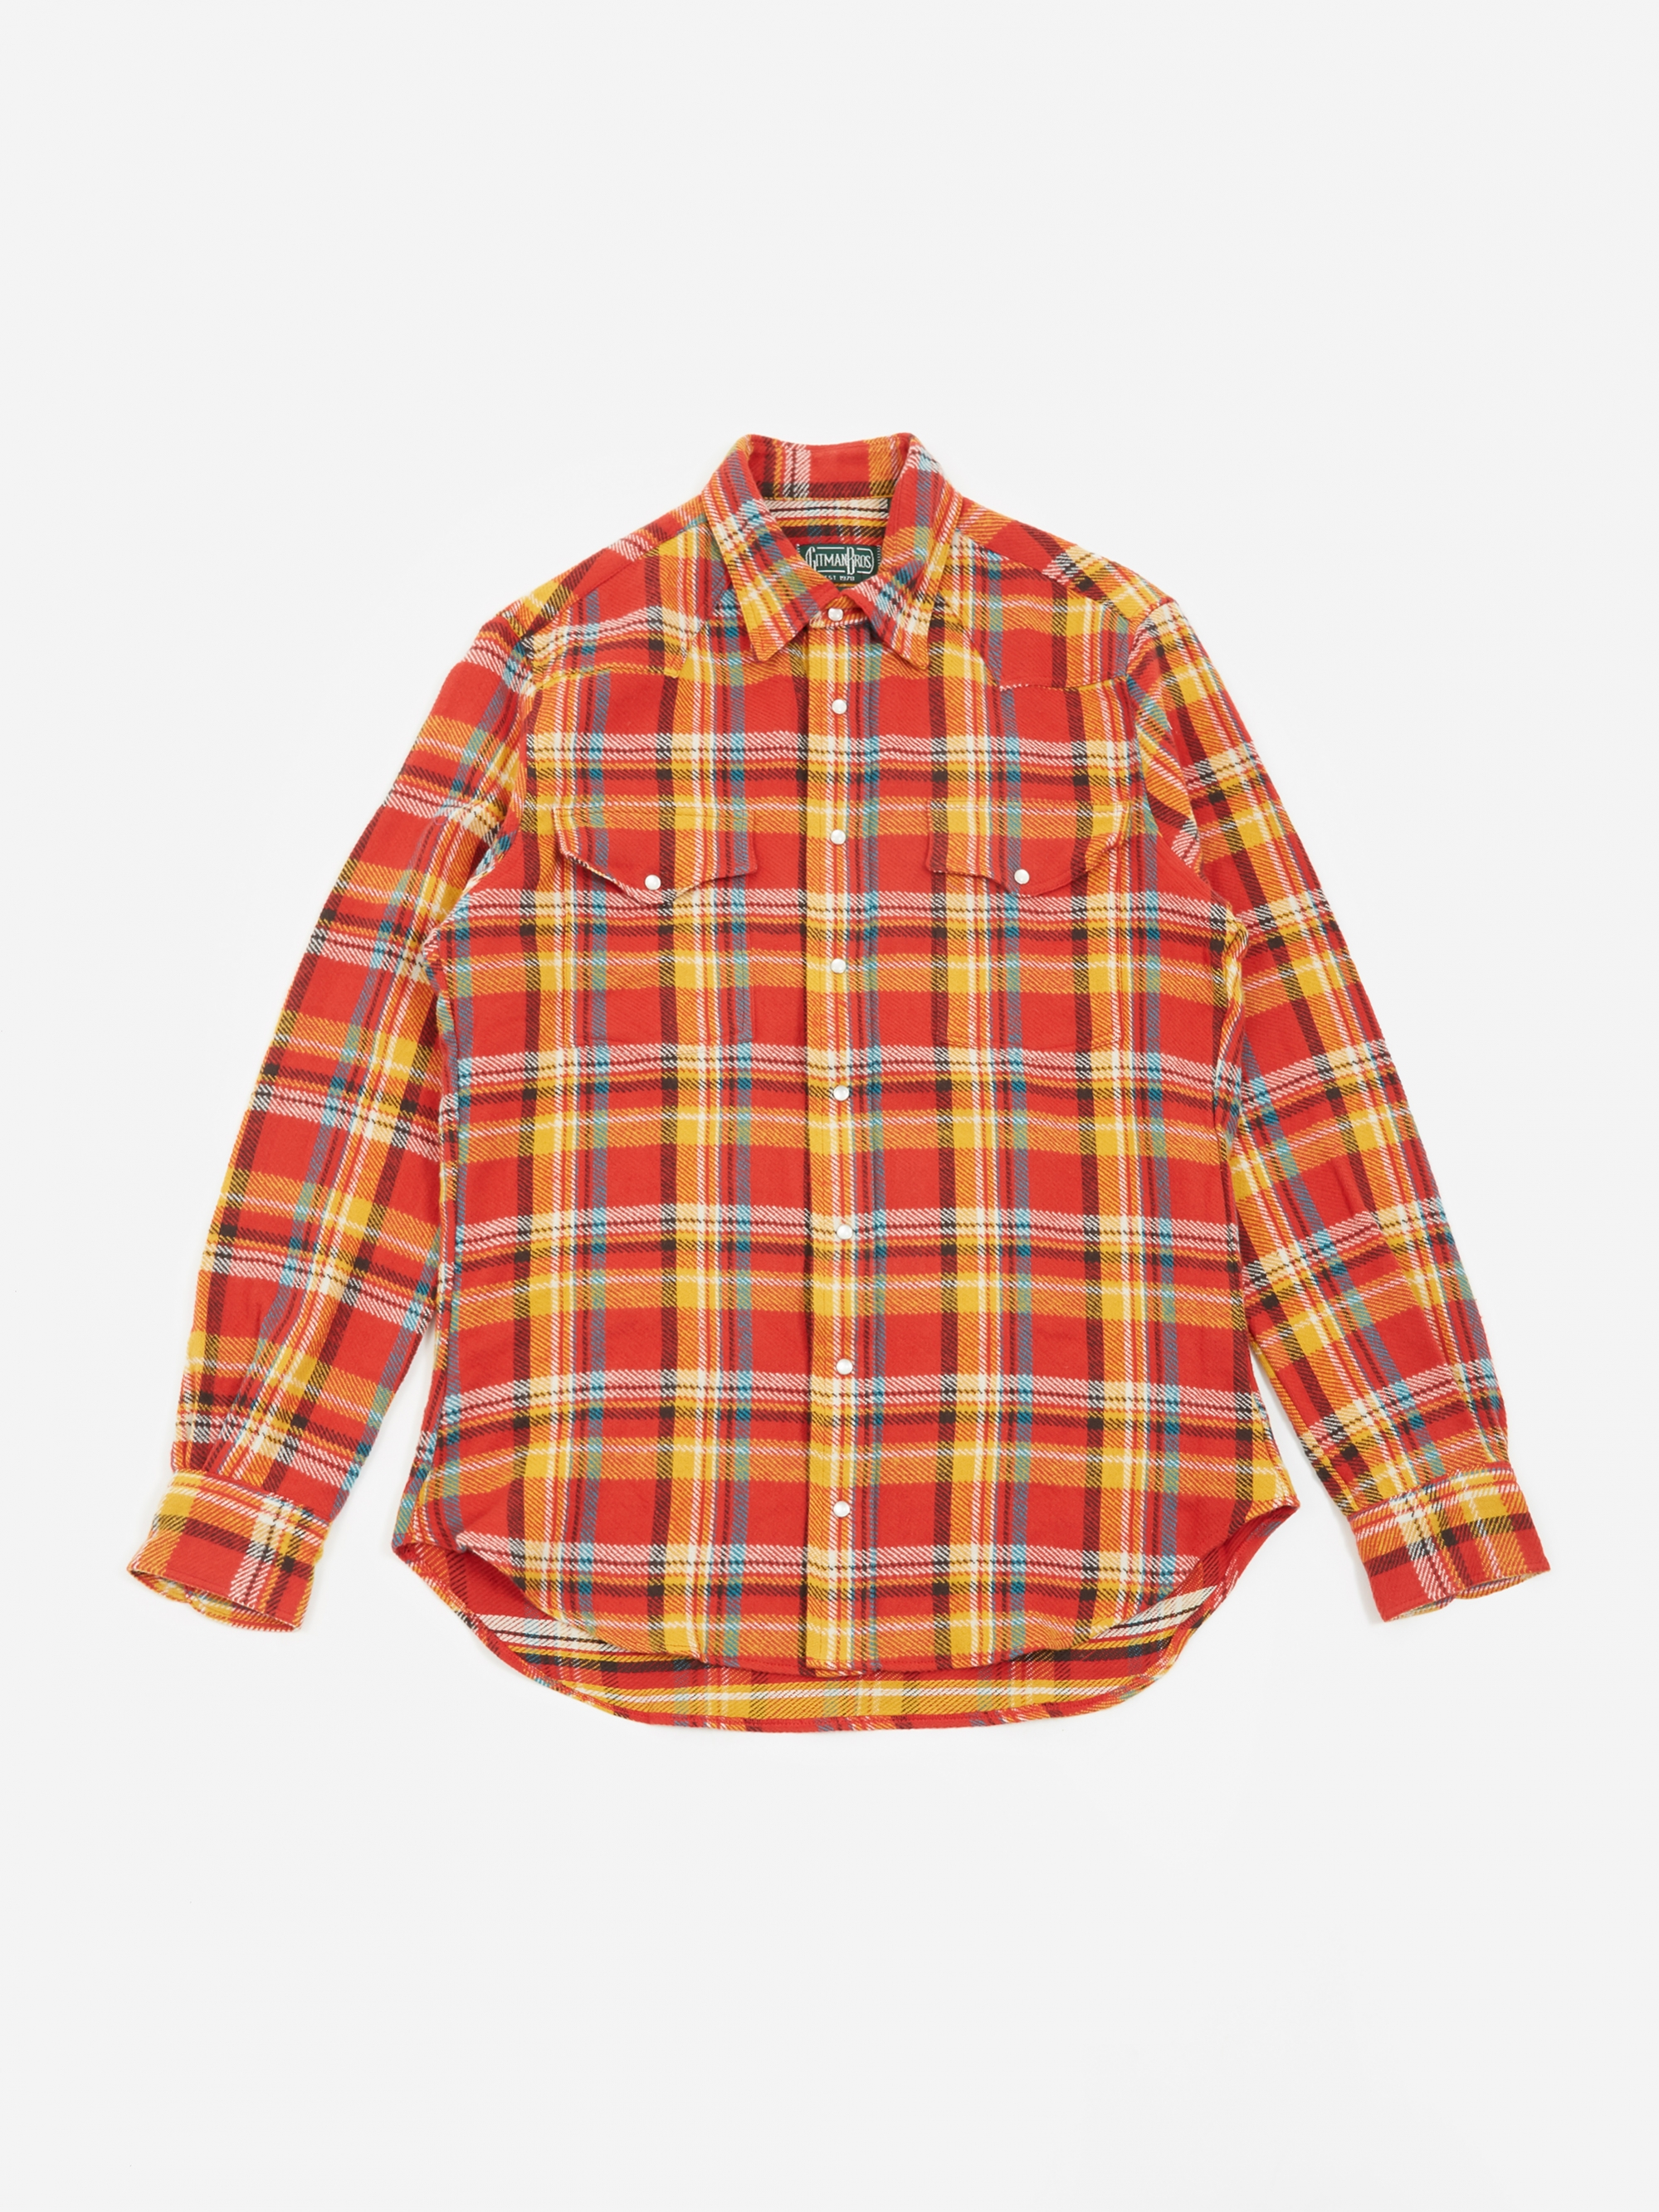 9d5ef66ed07 Gitman Vintage Western Shirt - Red Flannel